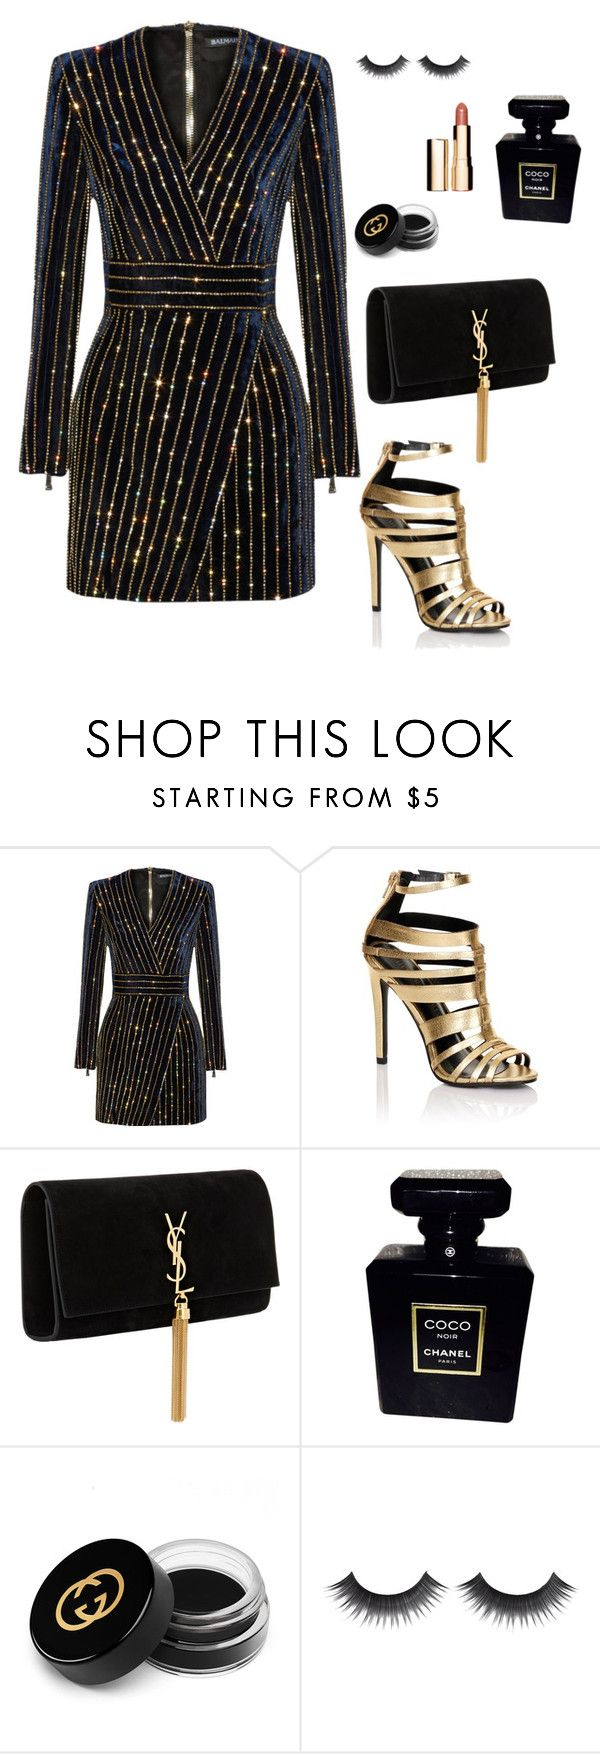 """Black and Gold"" by kellyamber1993 ❤ liked on Polyvore featuring Balmain, Lipsy, Yves Saint Laurent, Chanel, Gucci and Clarins"